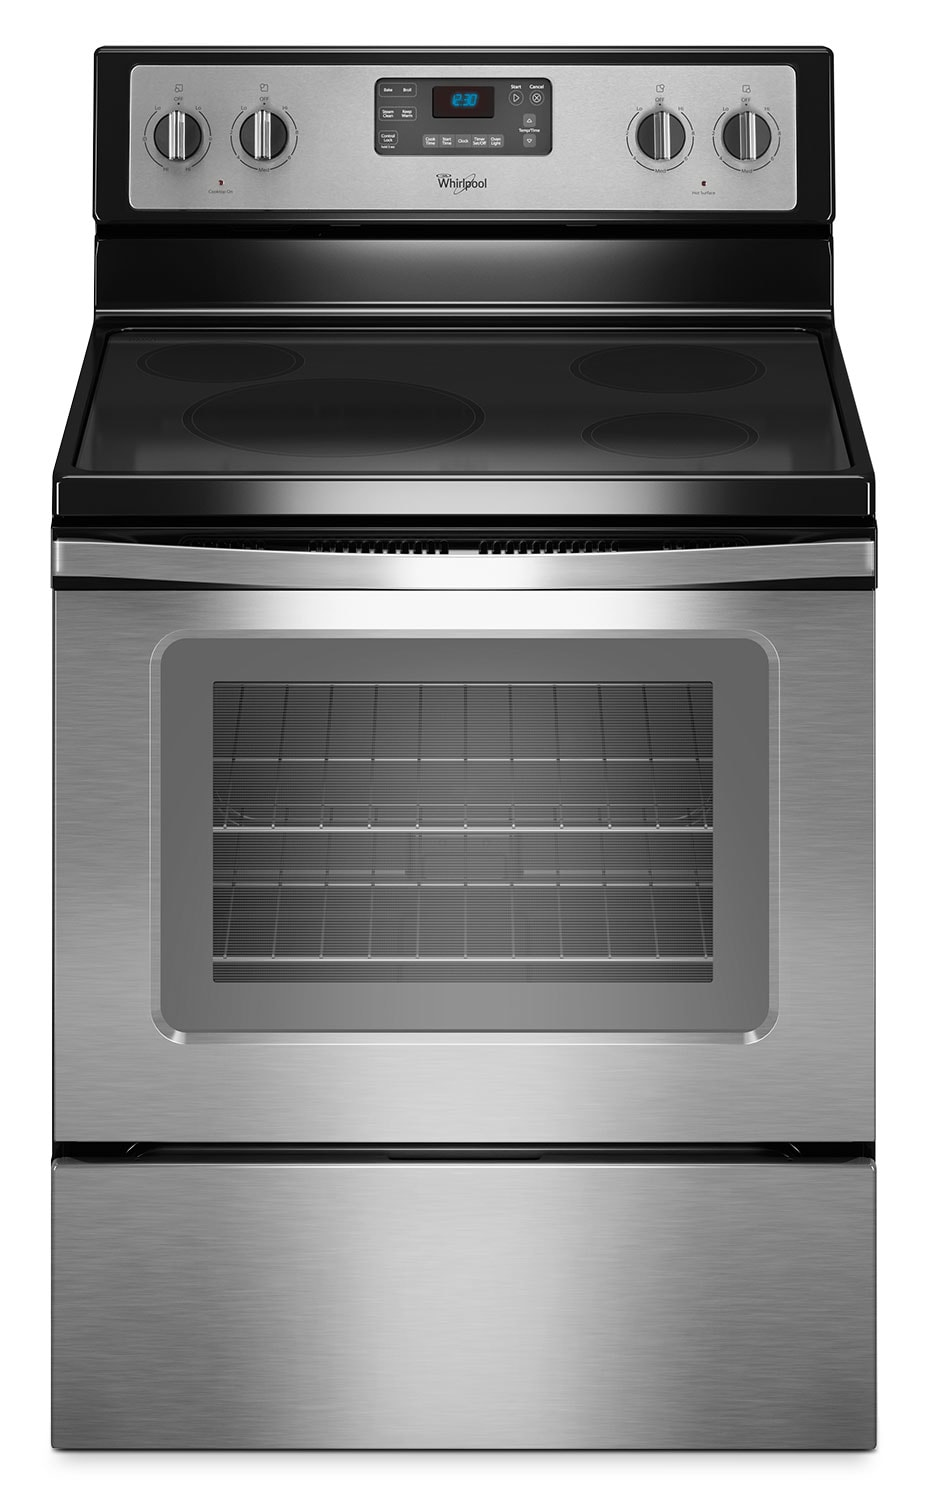 Whirlpool Stainless Steel Freestanding Electric Range w/ FlexHeat™ (4.8 Cu. Ft.) - YWFE330W0ES